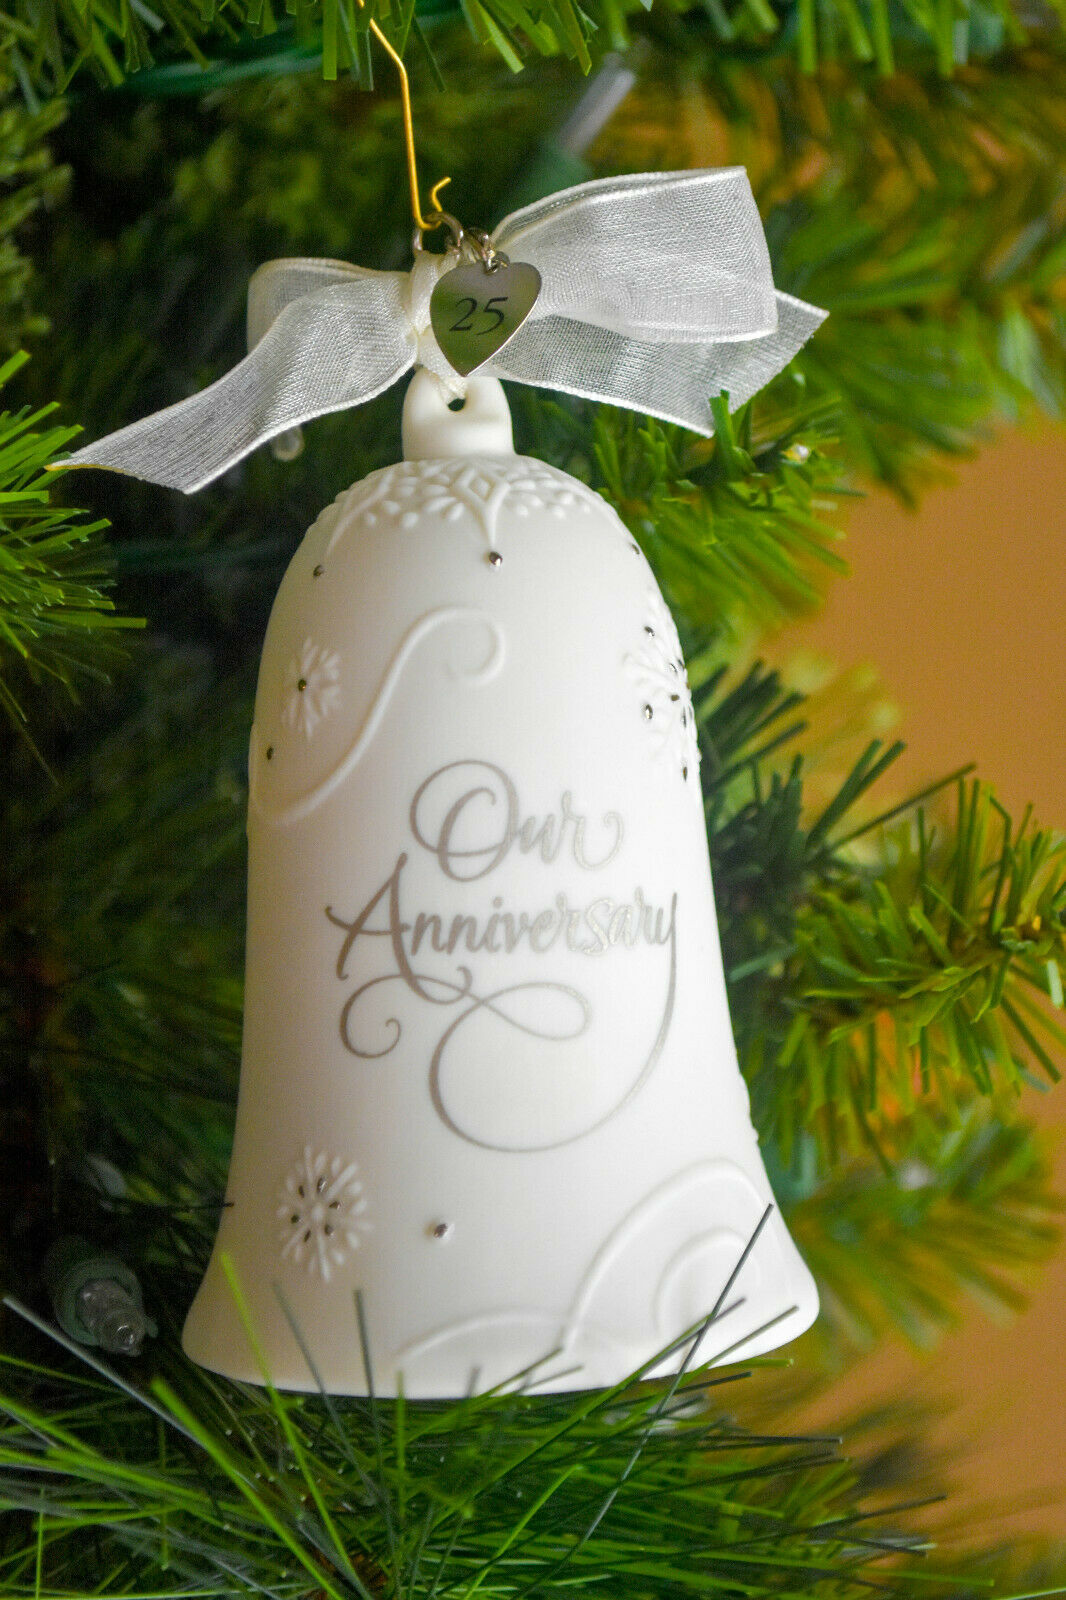 Hallmark: Anniversary Celebration - No CHARMS - Porcelain - NO DATE ON BELL image 4